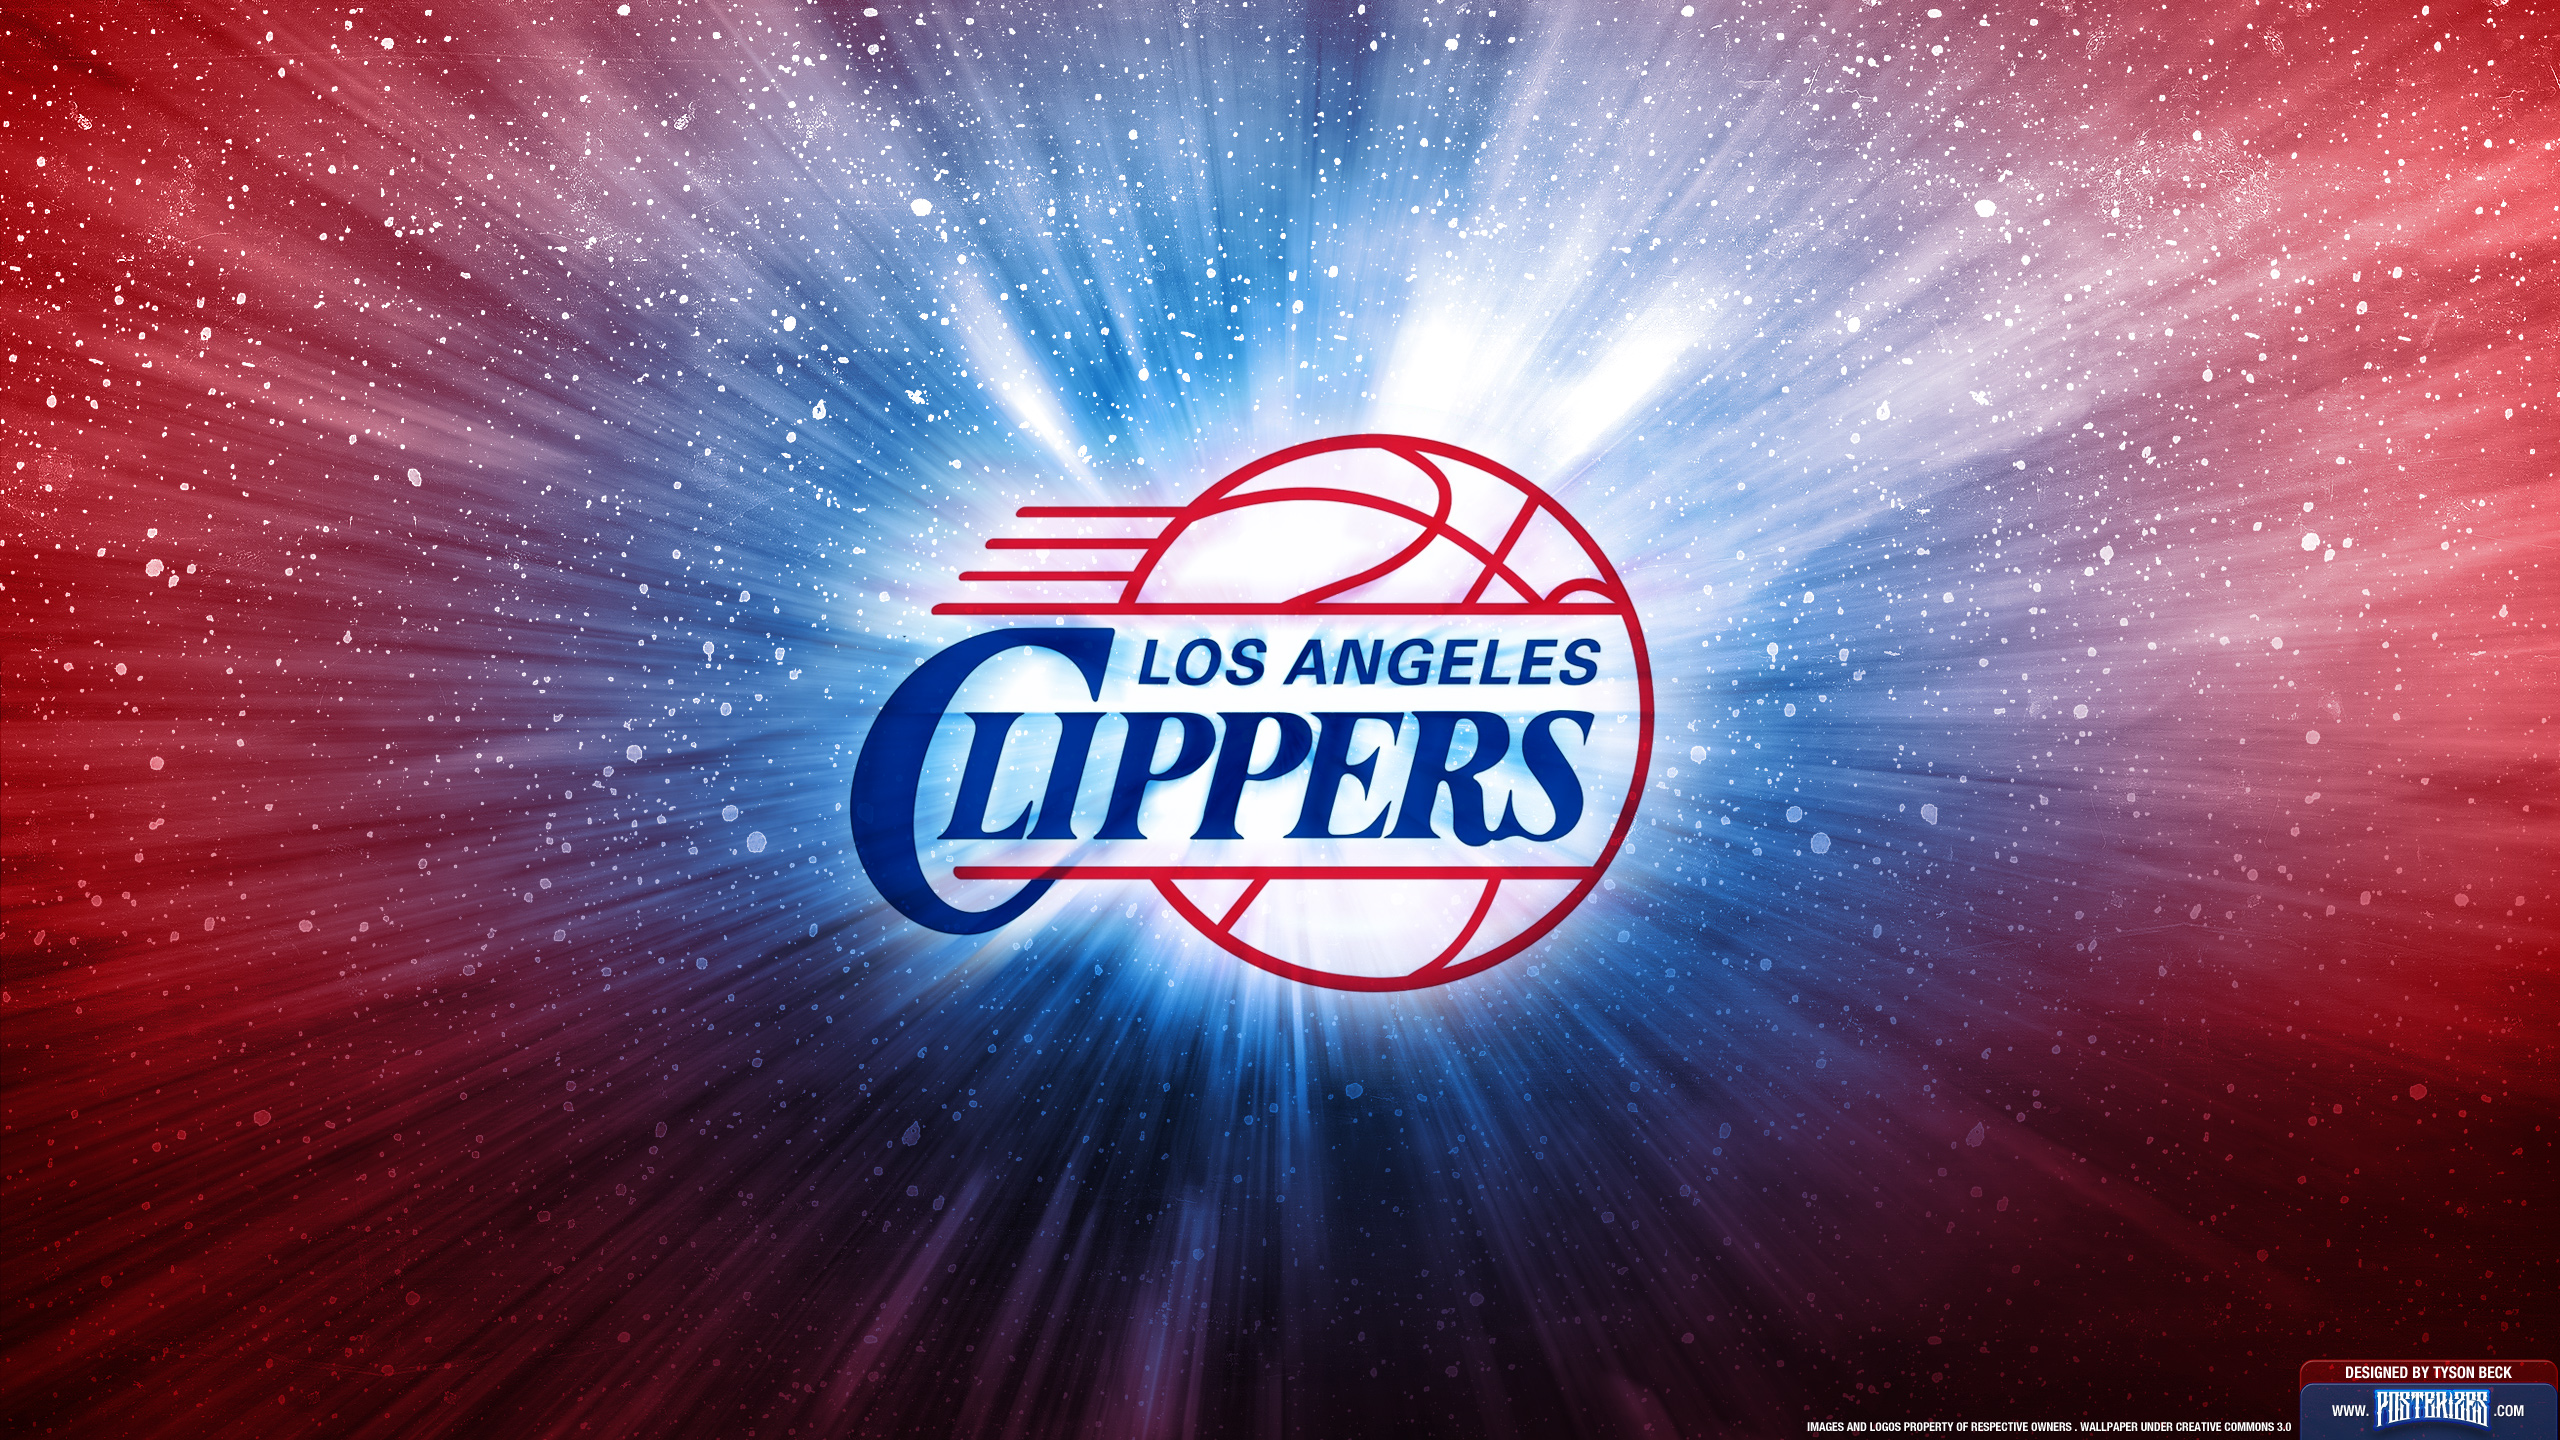 Download 2560x1440 Clippers HD Wallpapers for Free | BsnSCB Graphics